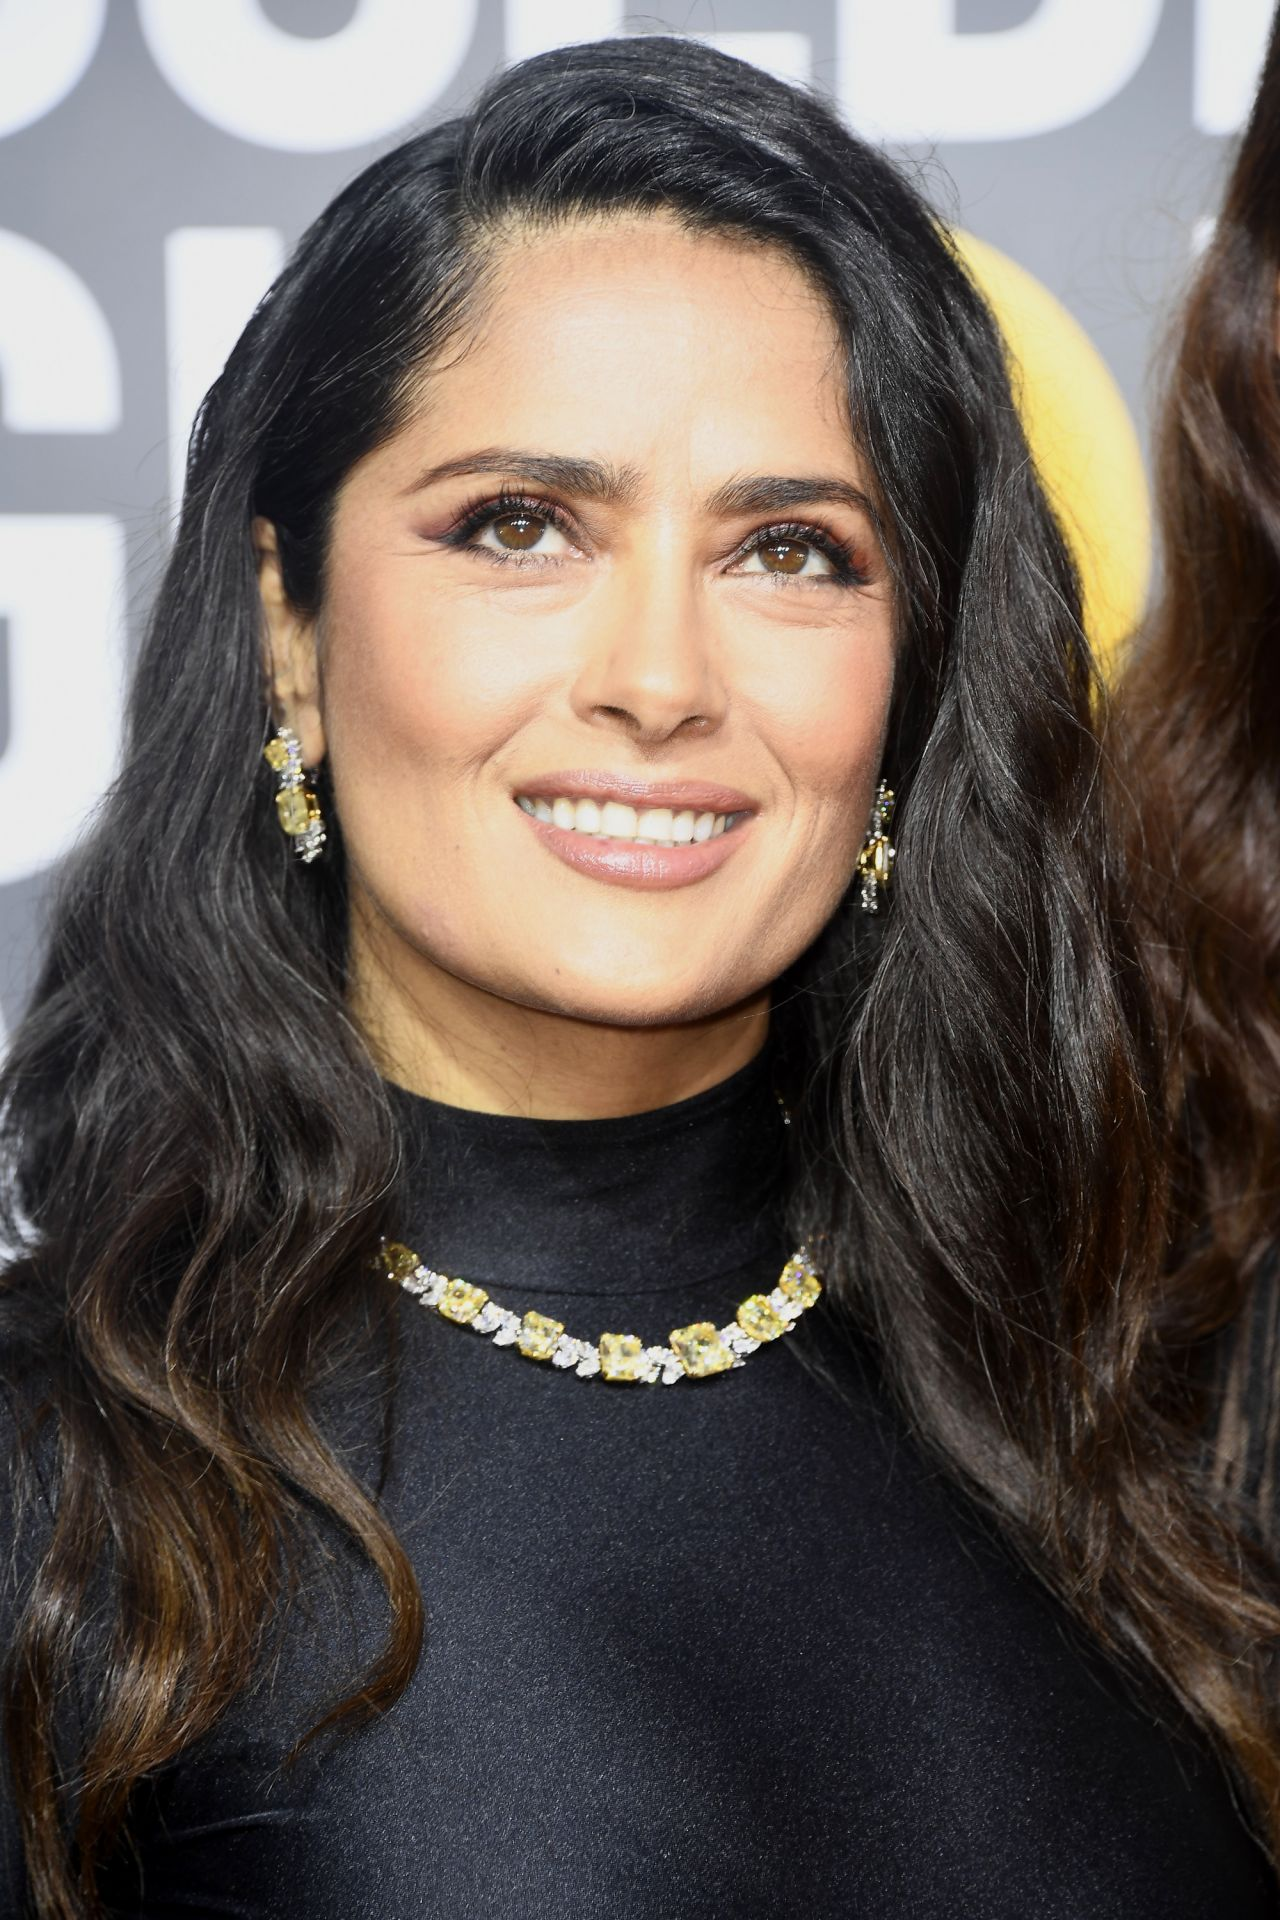 Salma Hayek – Golden Globe Awards 2018 Salma Hayek